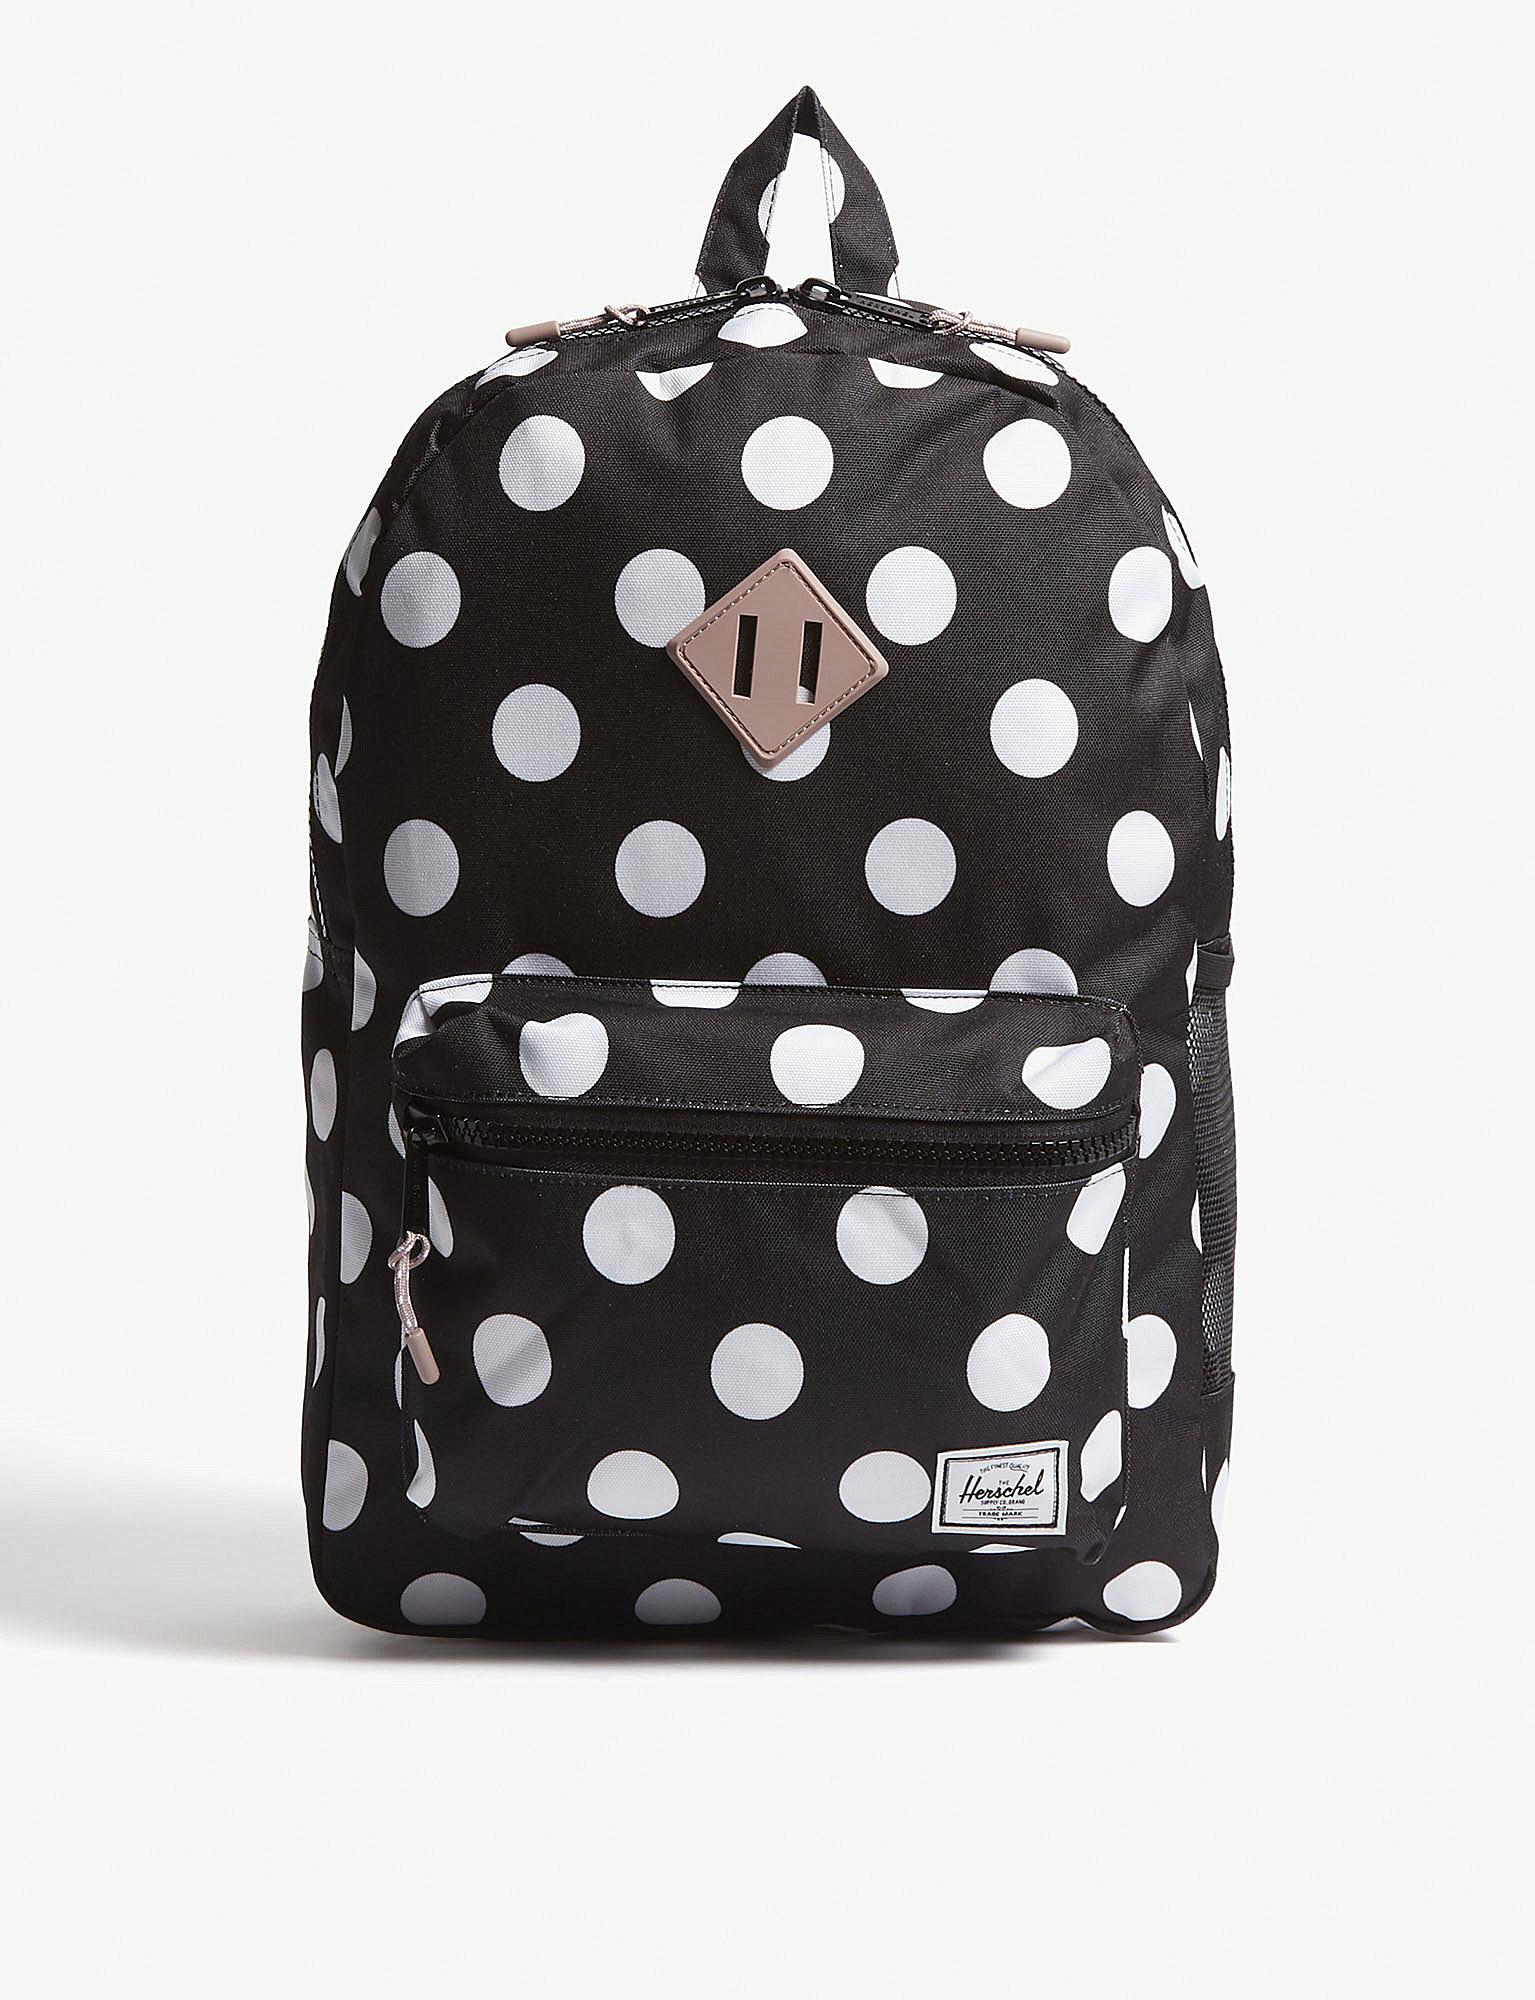 640120b581 Herschel Supply Co. Heritage Youth Xl Polka-dot Backpack in Black - Lyst